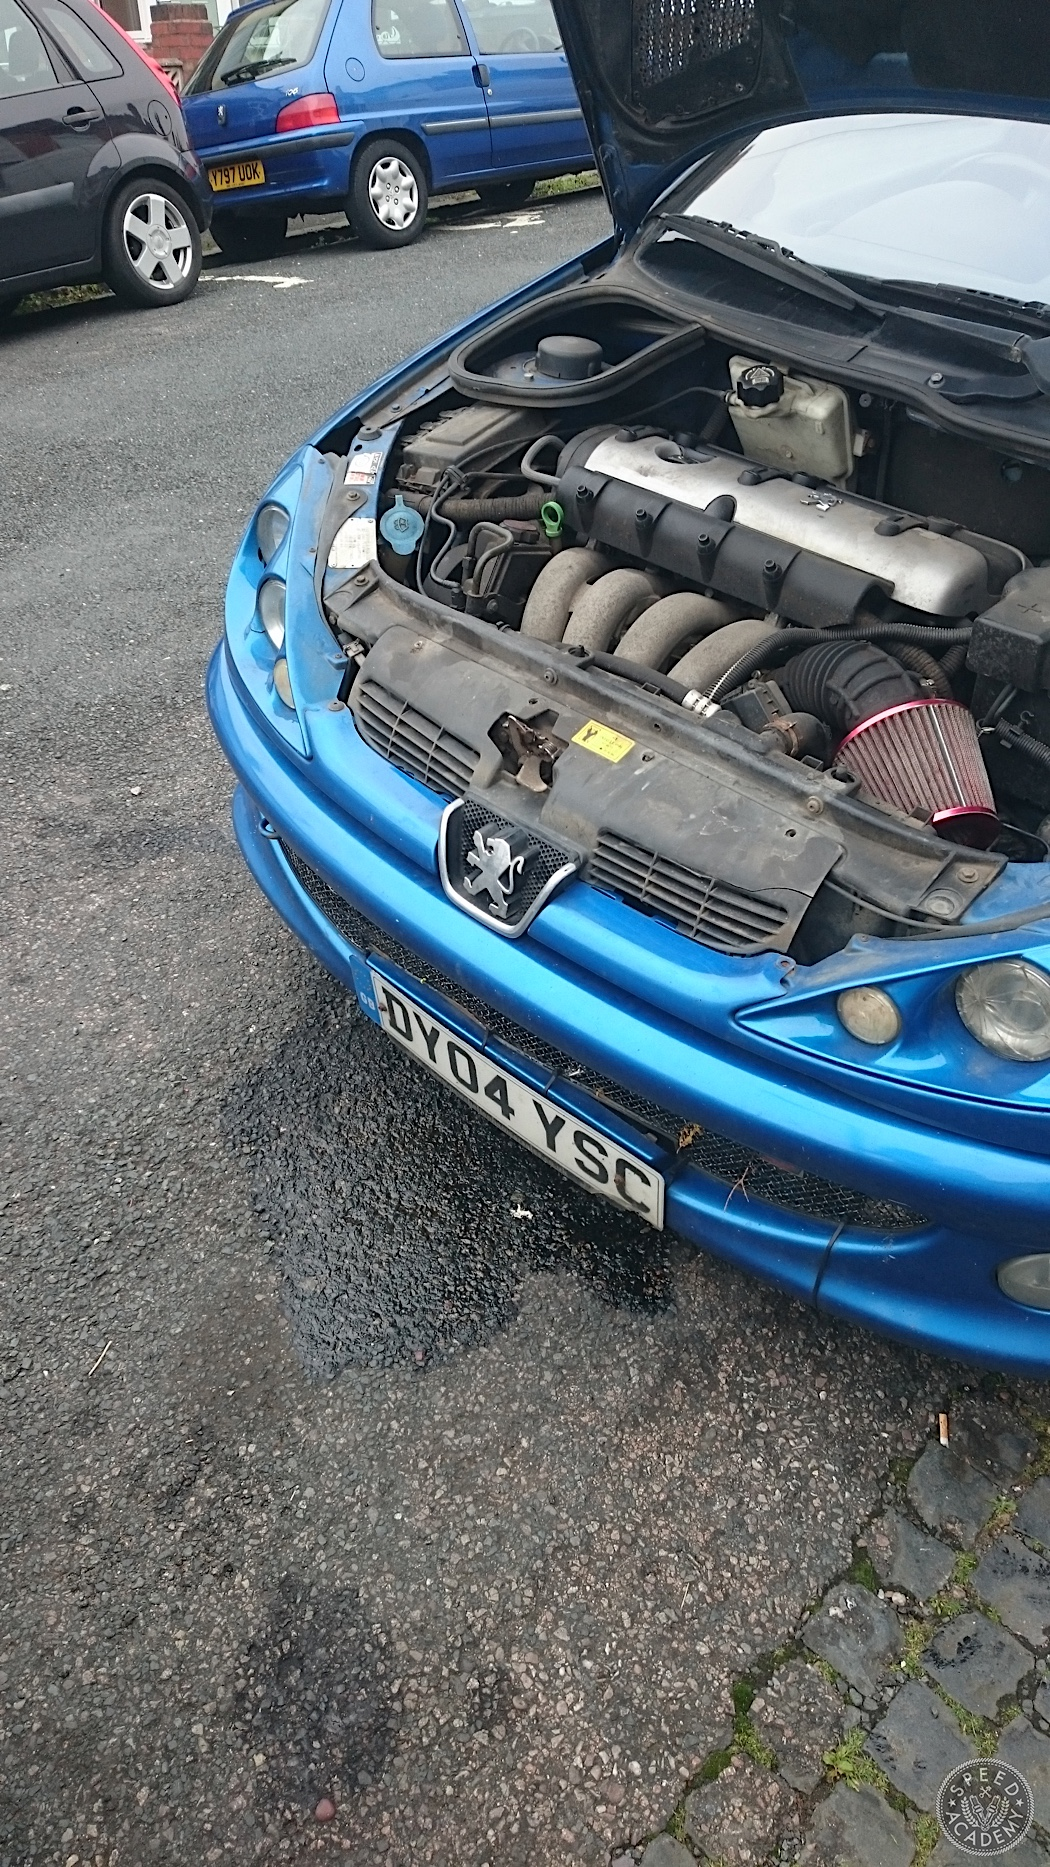 Peugeot 206 Gti 180 Air Pipe Other Car Parts Vehicle Parts Accessories